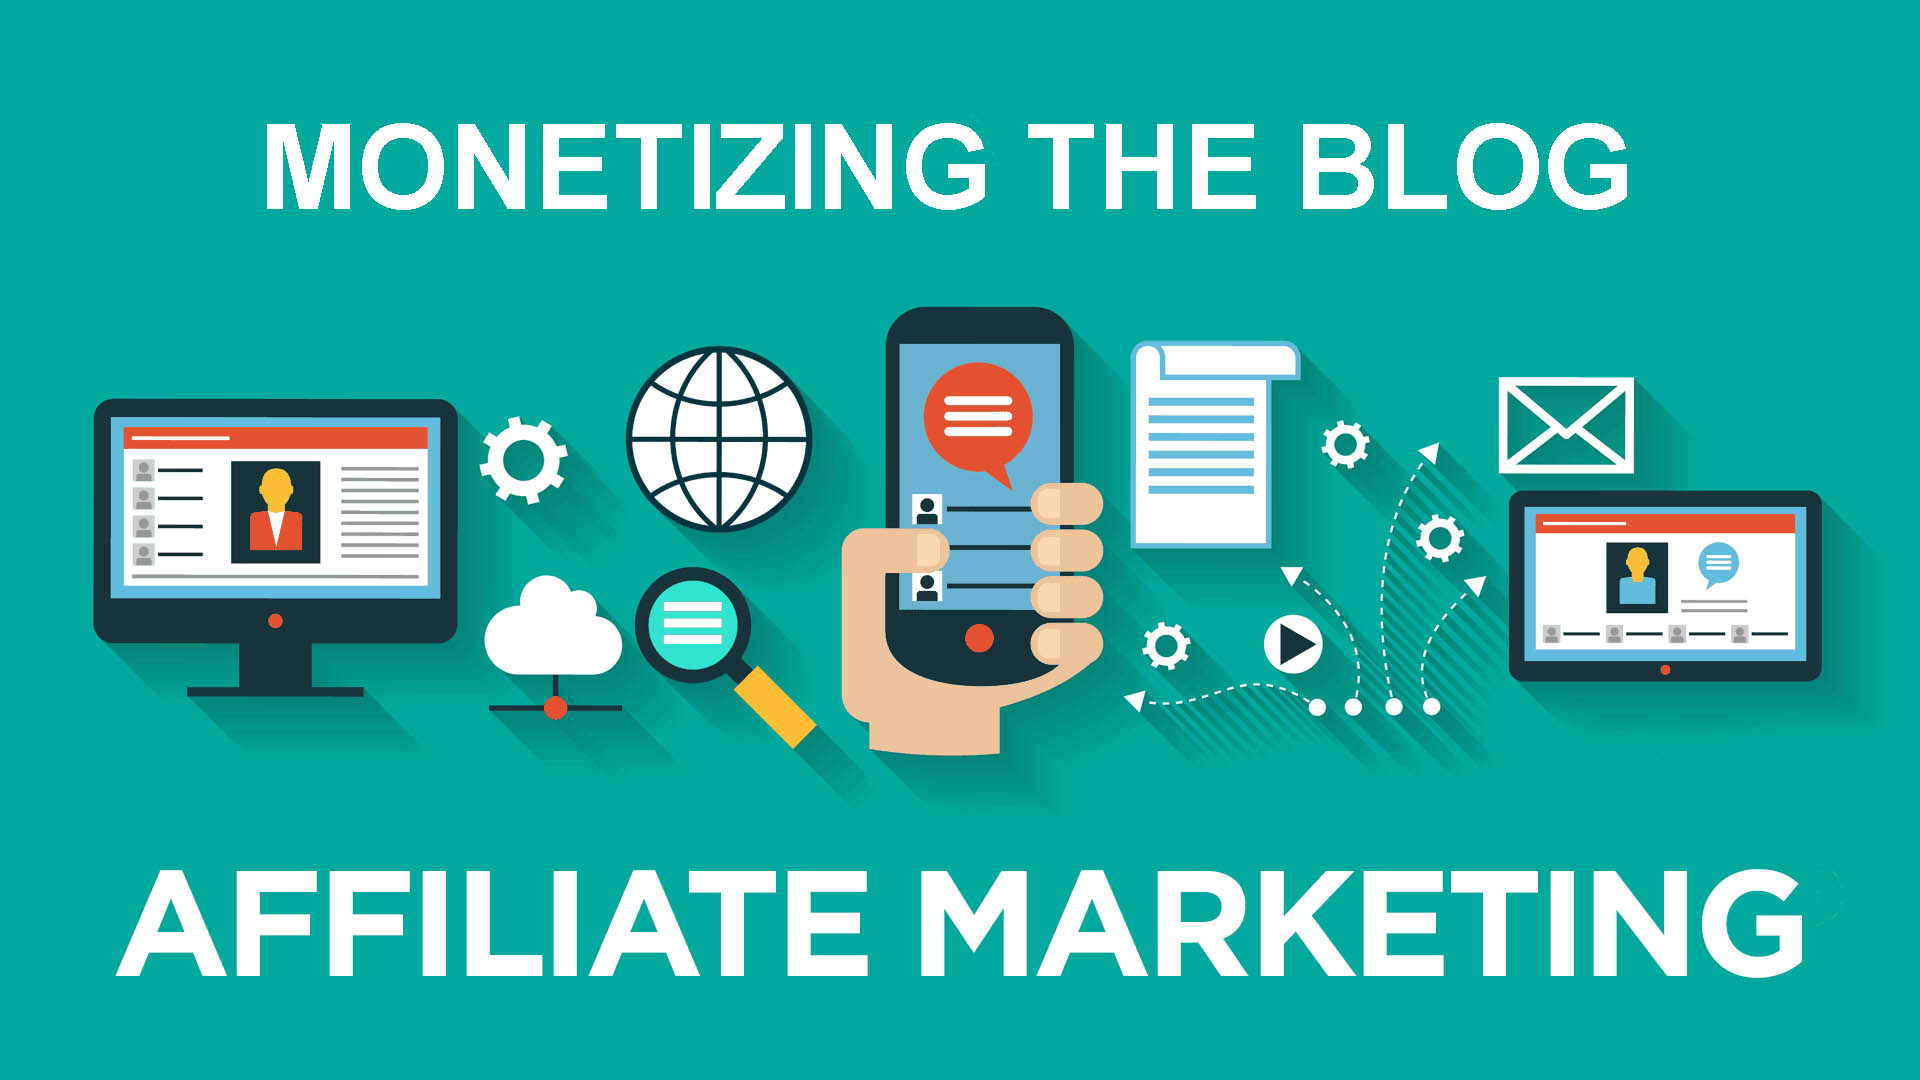 Monetizing the Blog through affiliate products